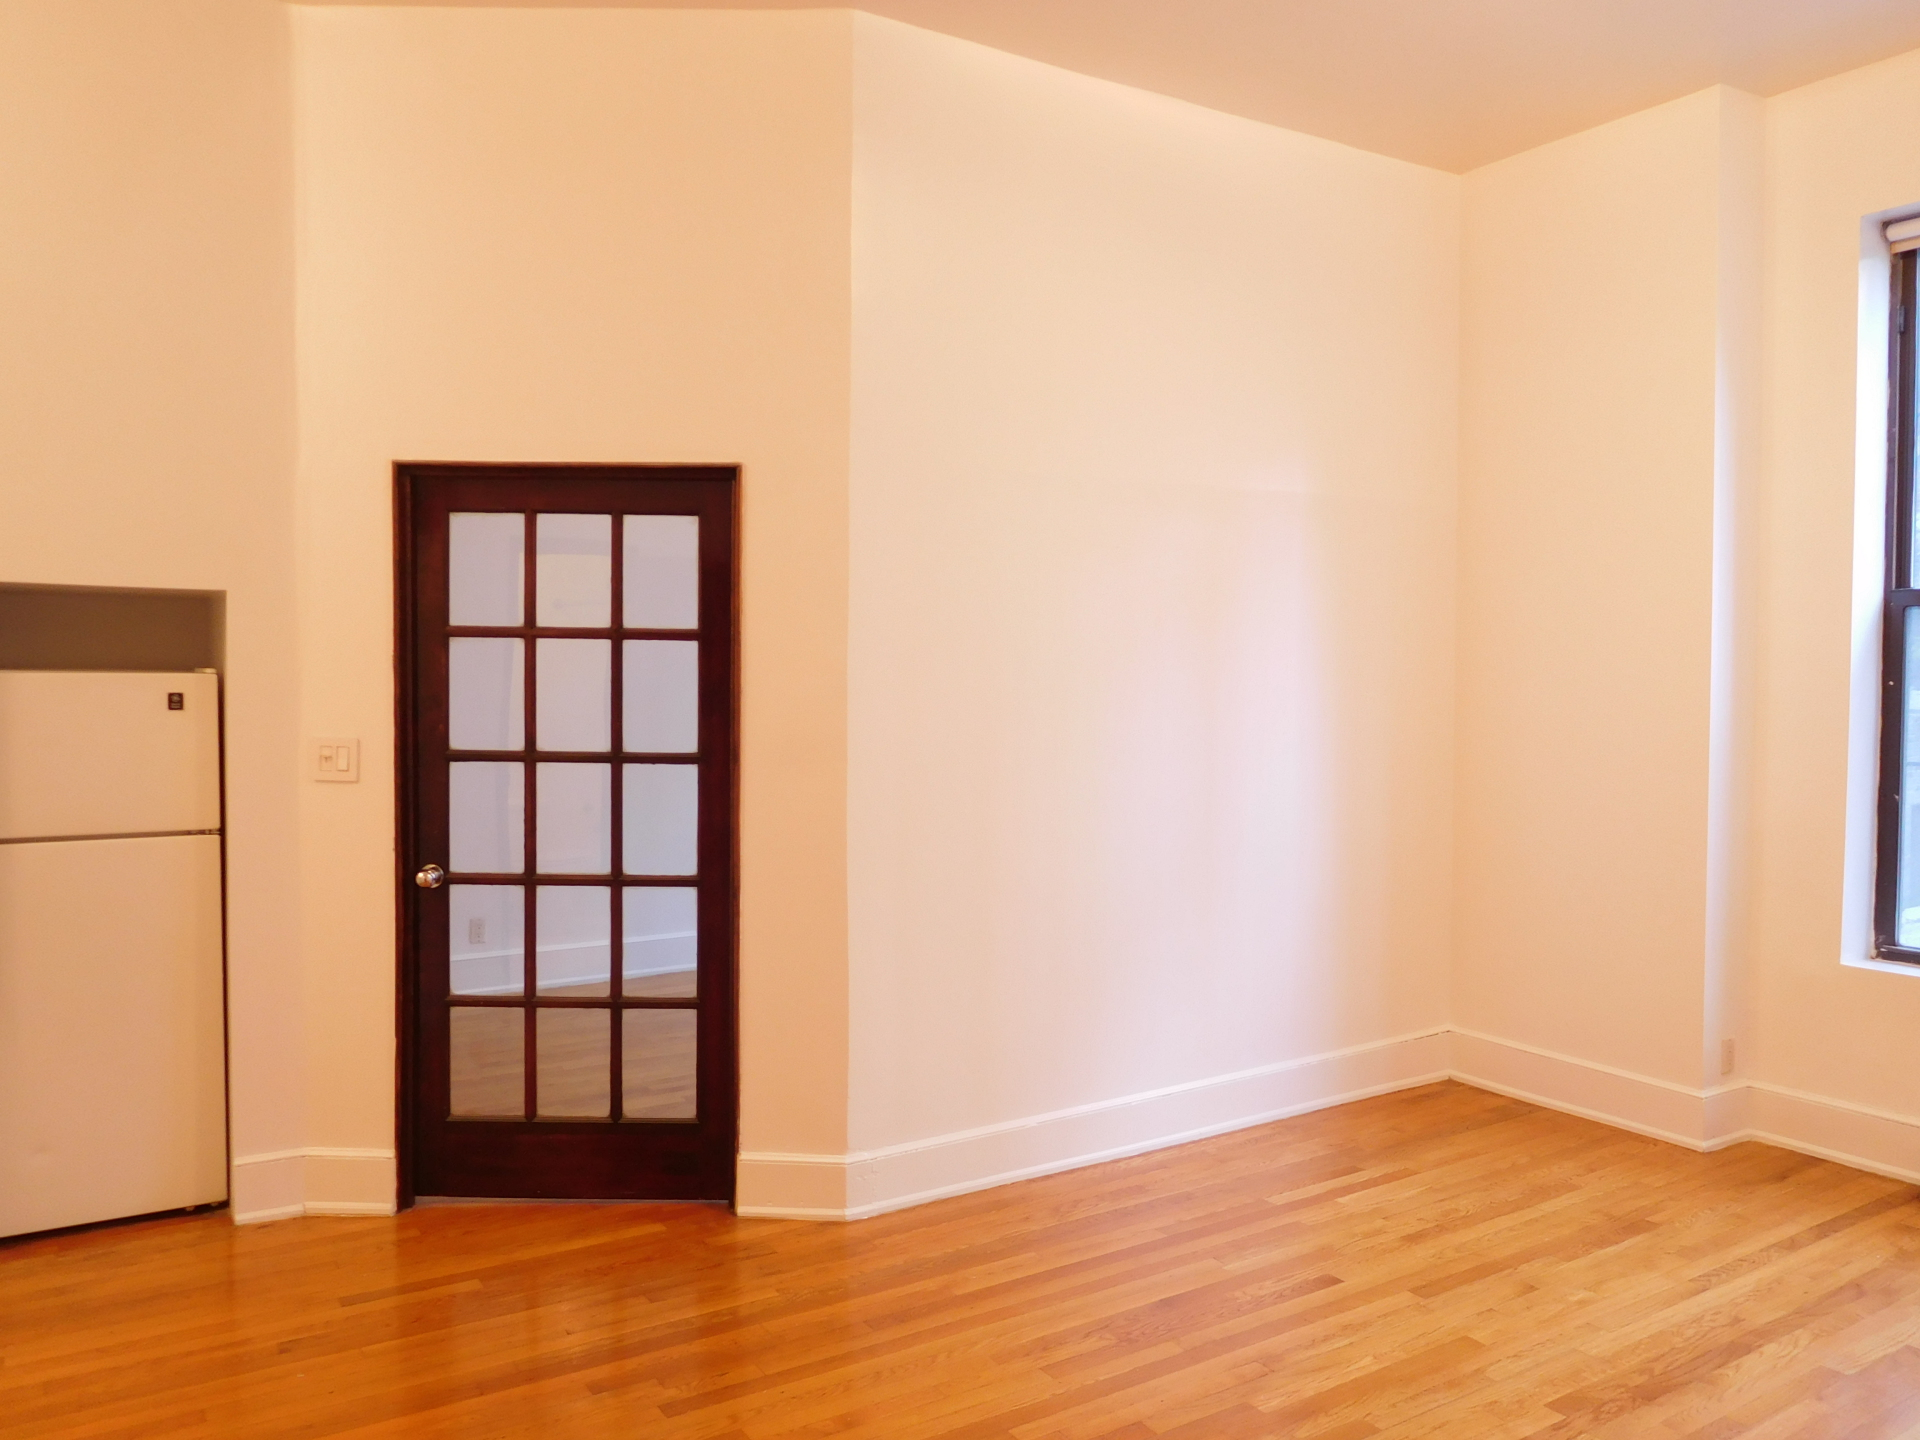 French Door dividing Badroom from Living Room